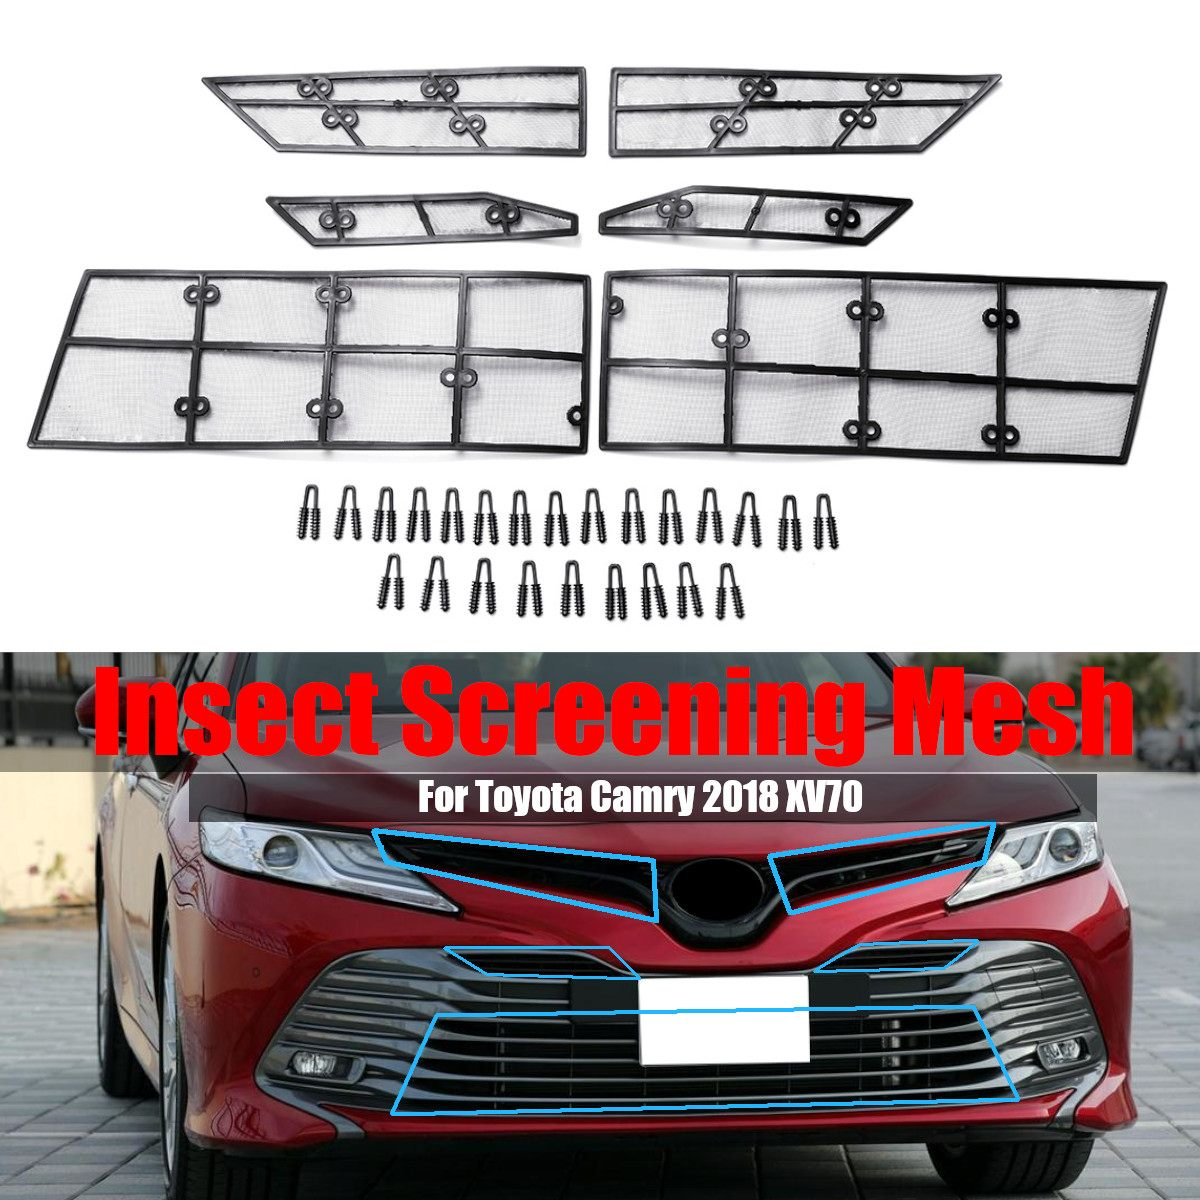 6Pcs/Set Car Front Insect Screening Mesh Net Grille Steel Wire For Toyota Camry 2018 8th XV706Pcs/Set Car Front Insect Screening Mesh Net Grille Steel Wire For Toyota Camry 2018 8th XV70